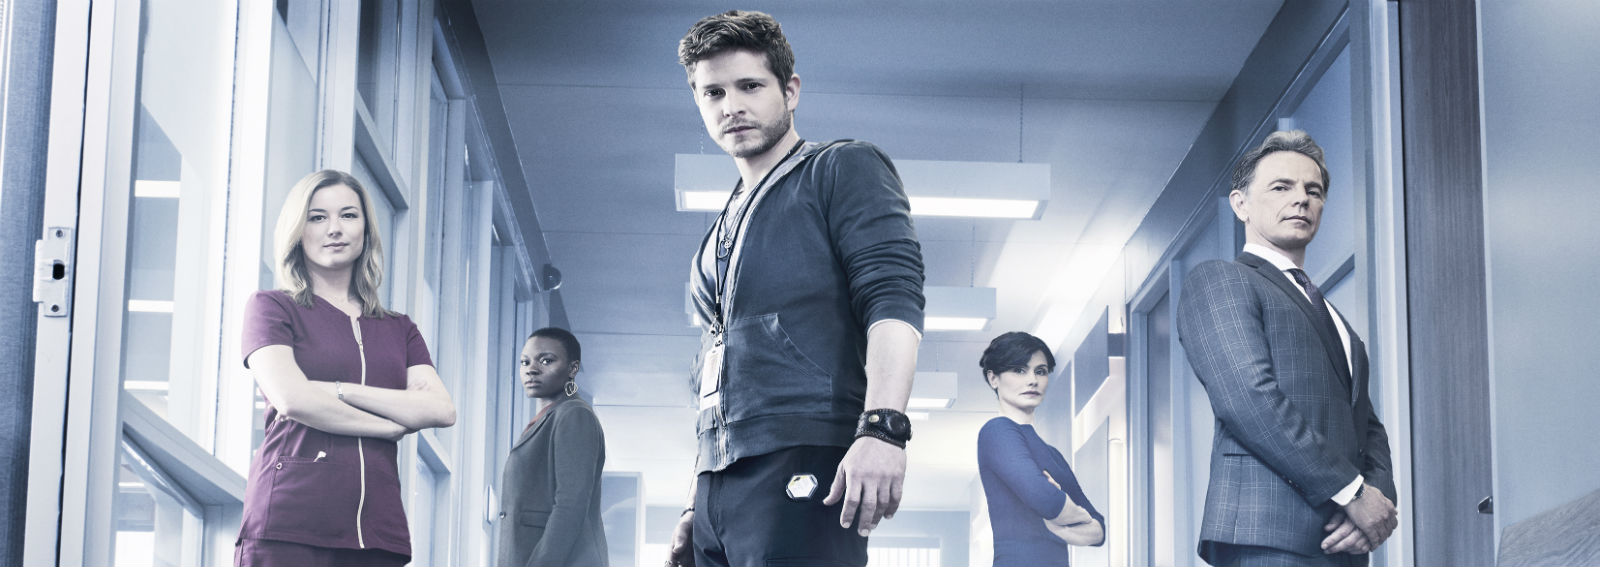 the resident - cast